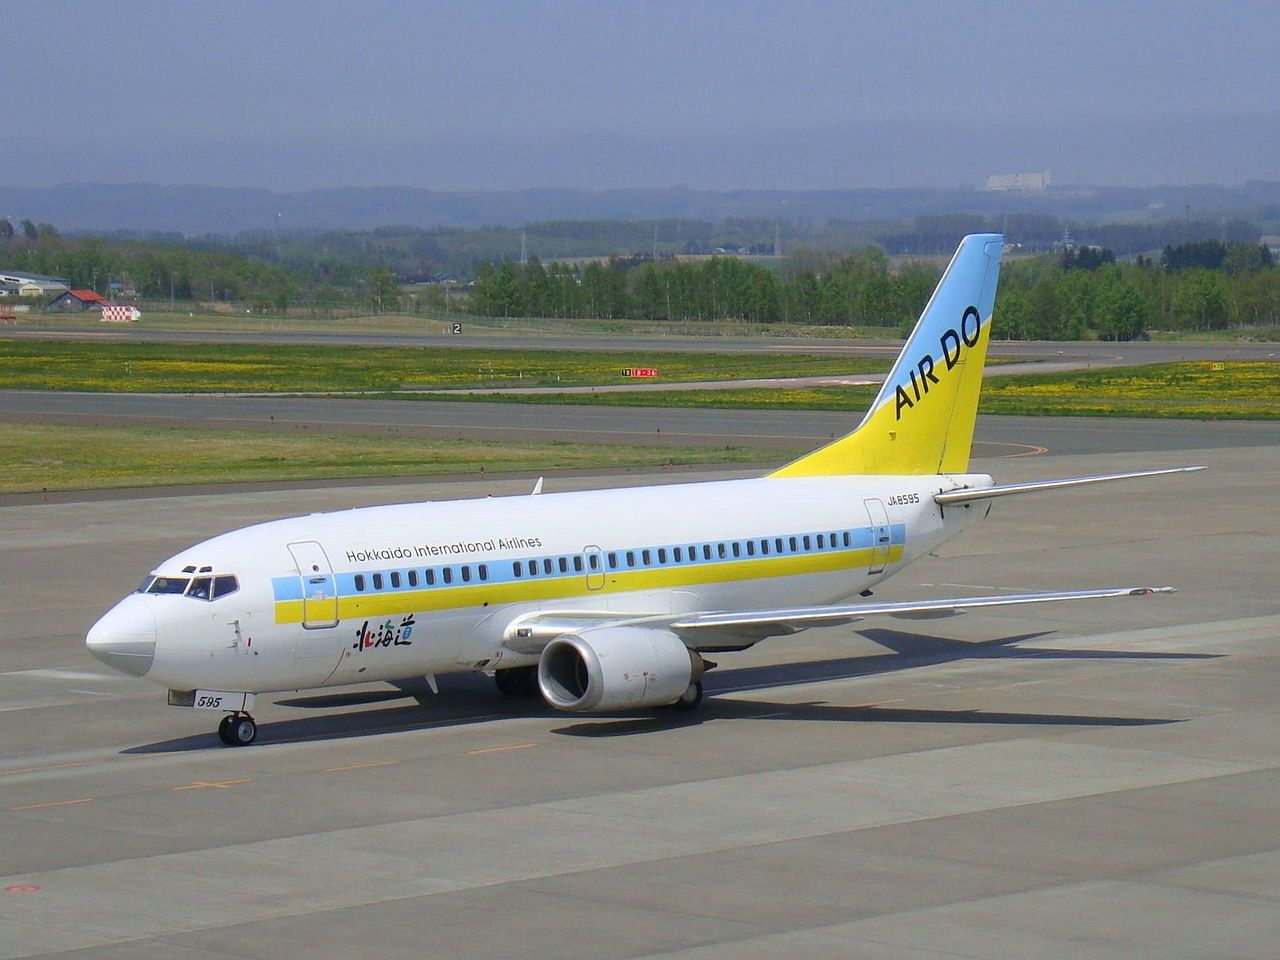 Boeing 737 500 Hokkaido International Airlines 8595 Air Do Wikipedia Boeing 737 Commercial Aircraft Commercial Aviation